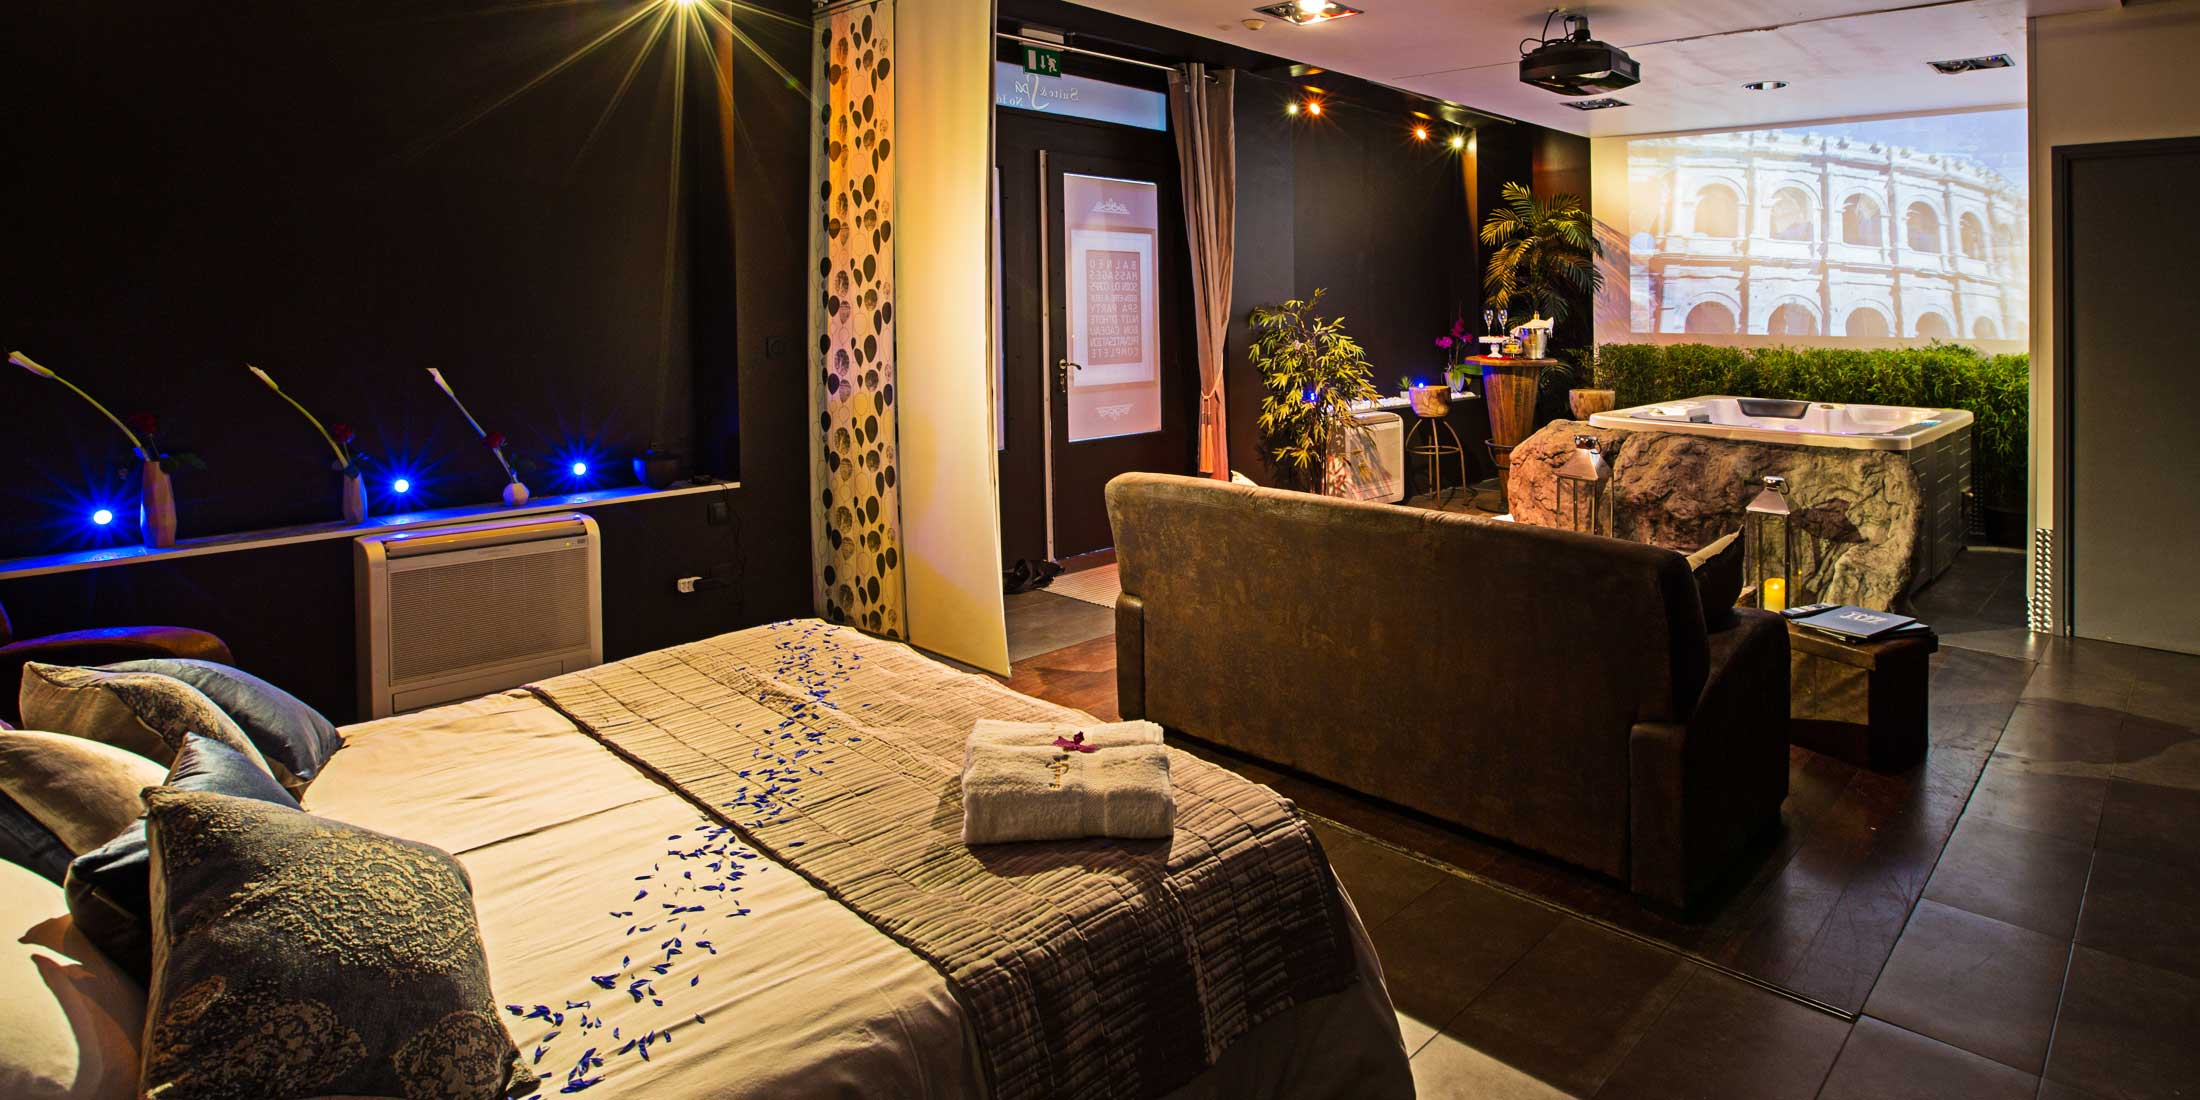 Salon De Massage Nimes Suite And Spa No Idem